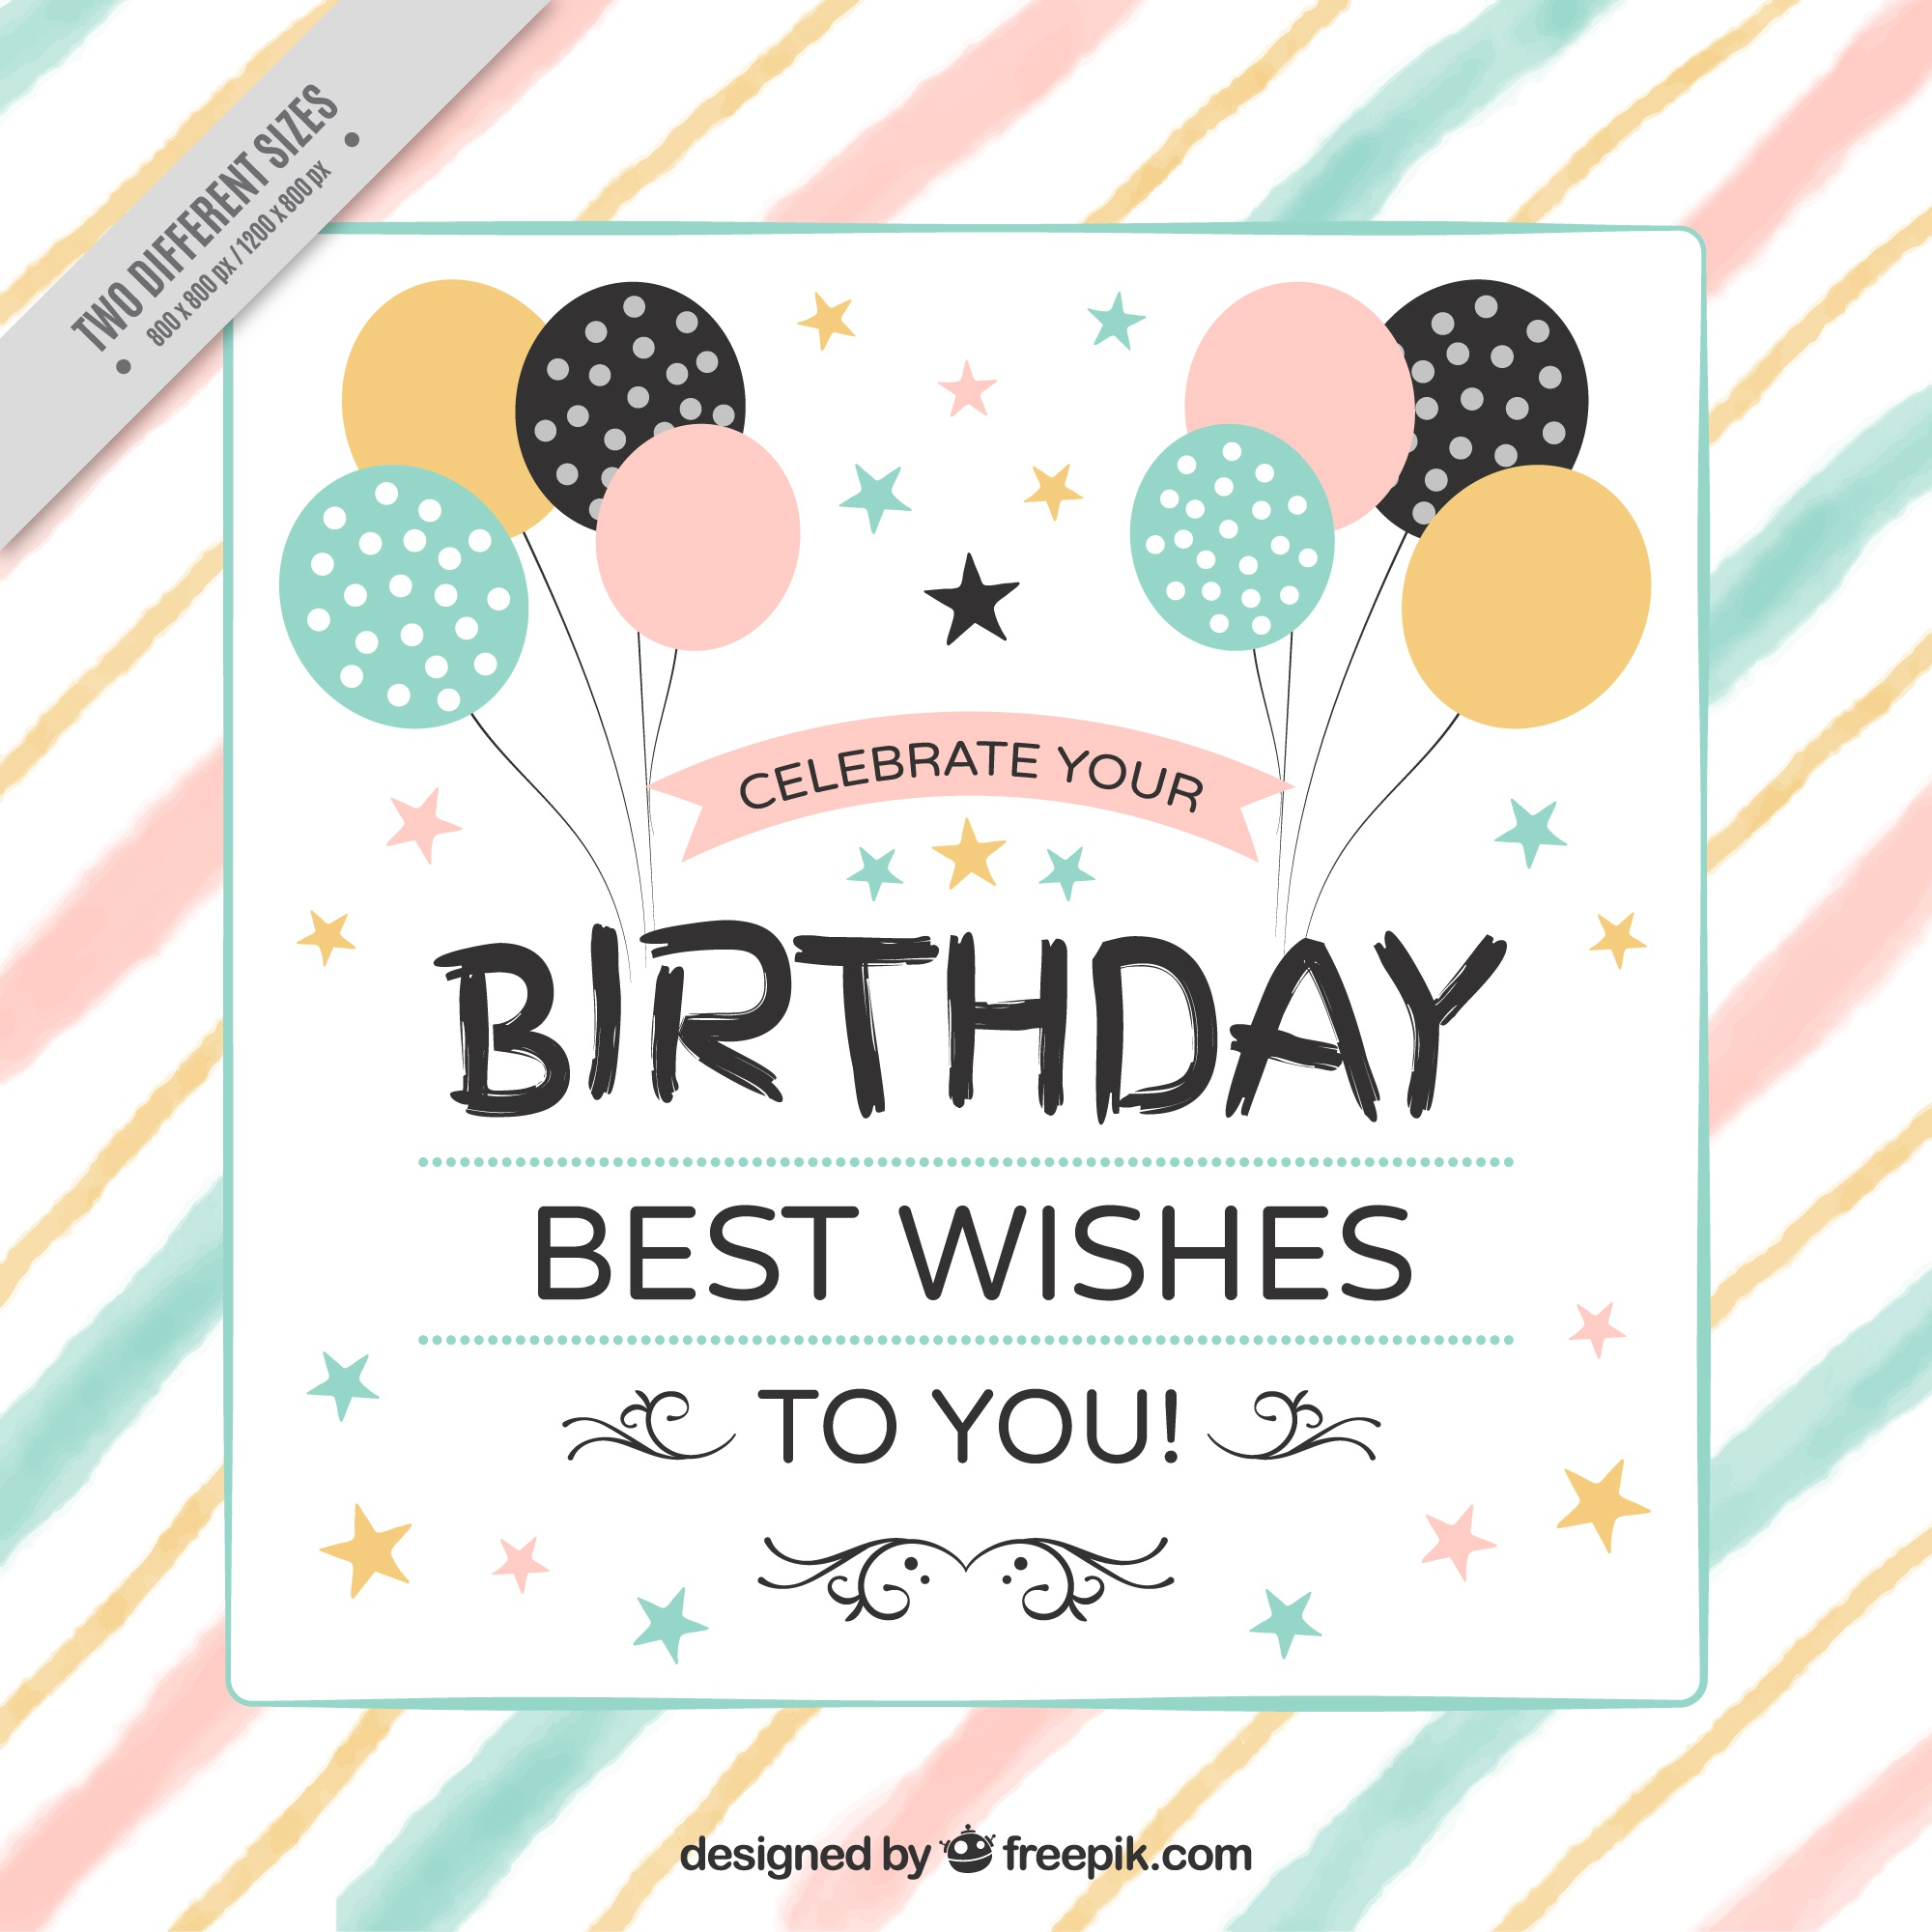 Vintage birthday background with balloons and watercolor stripes